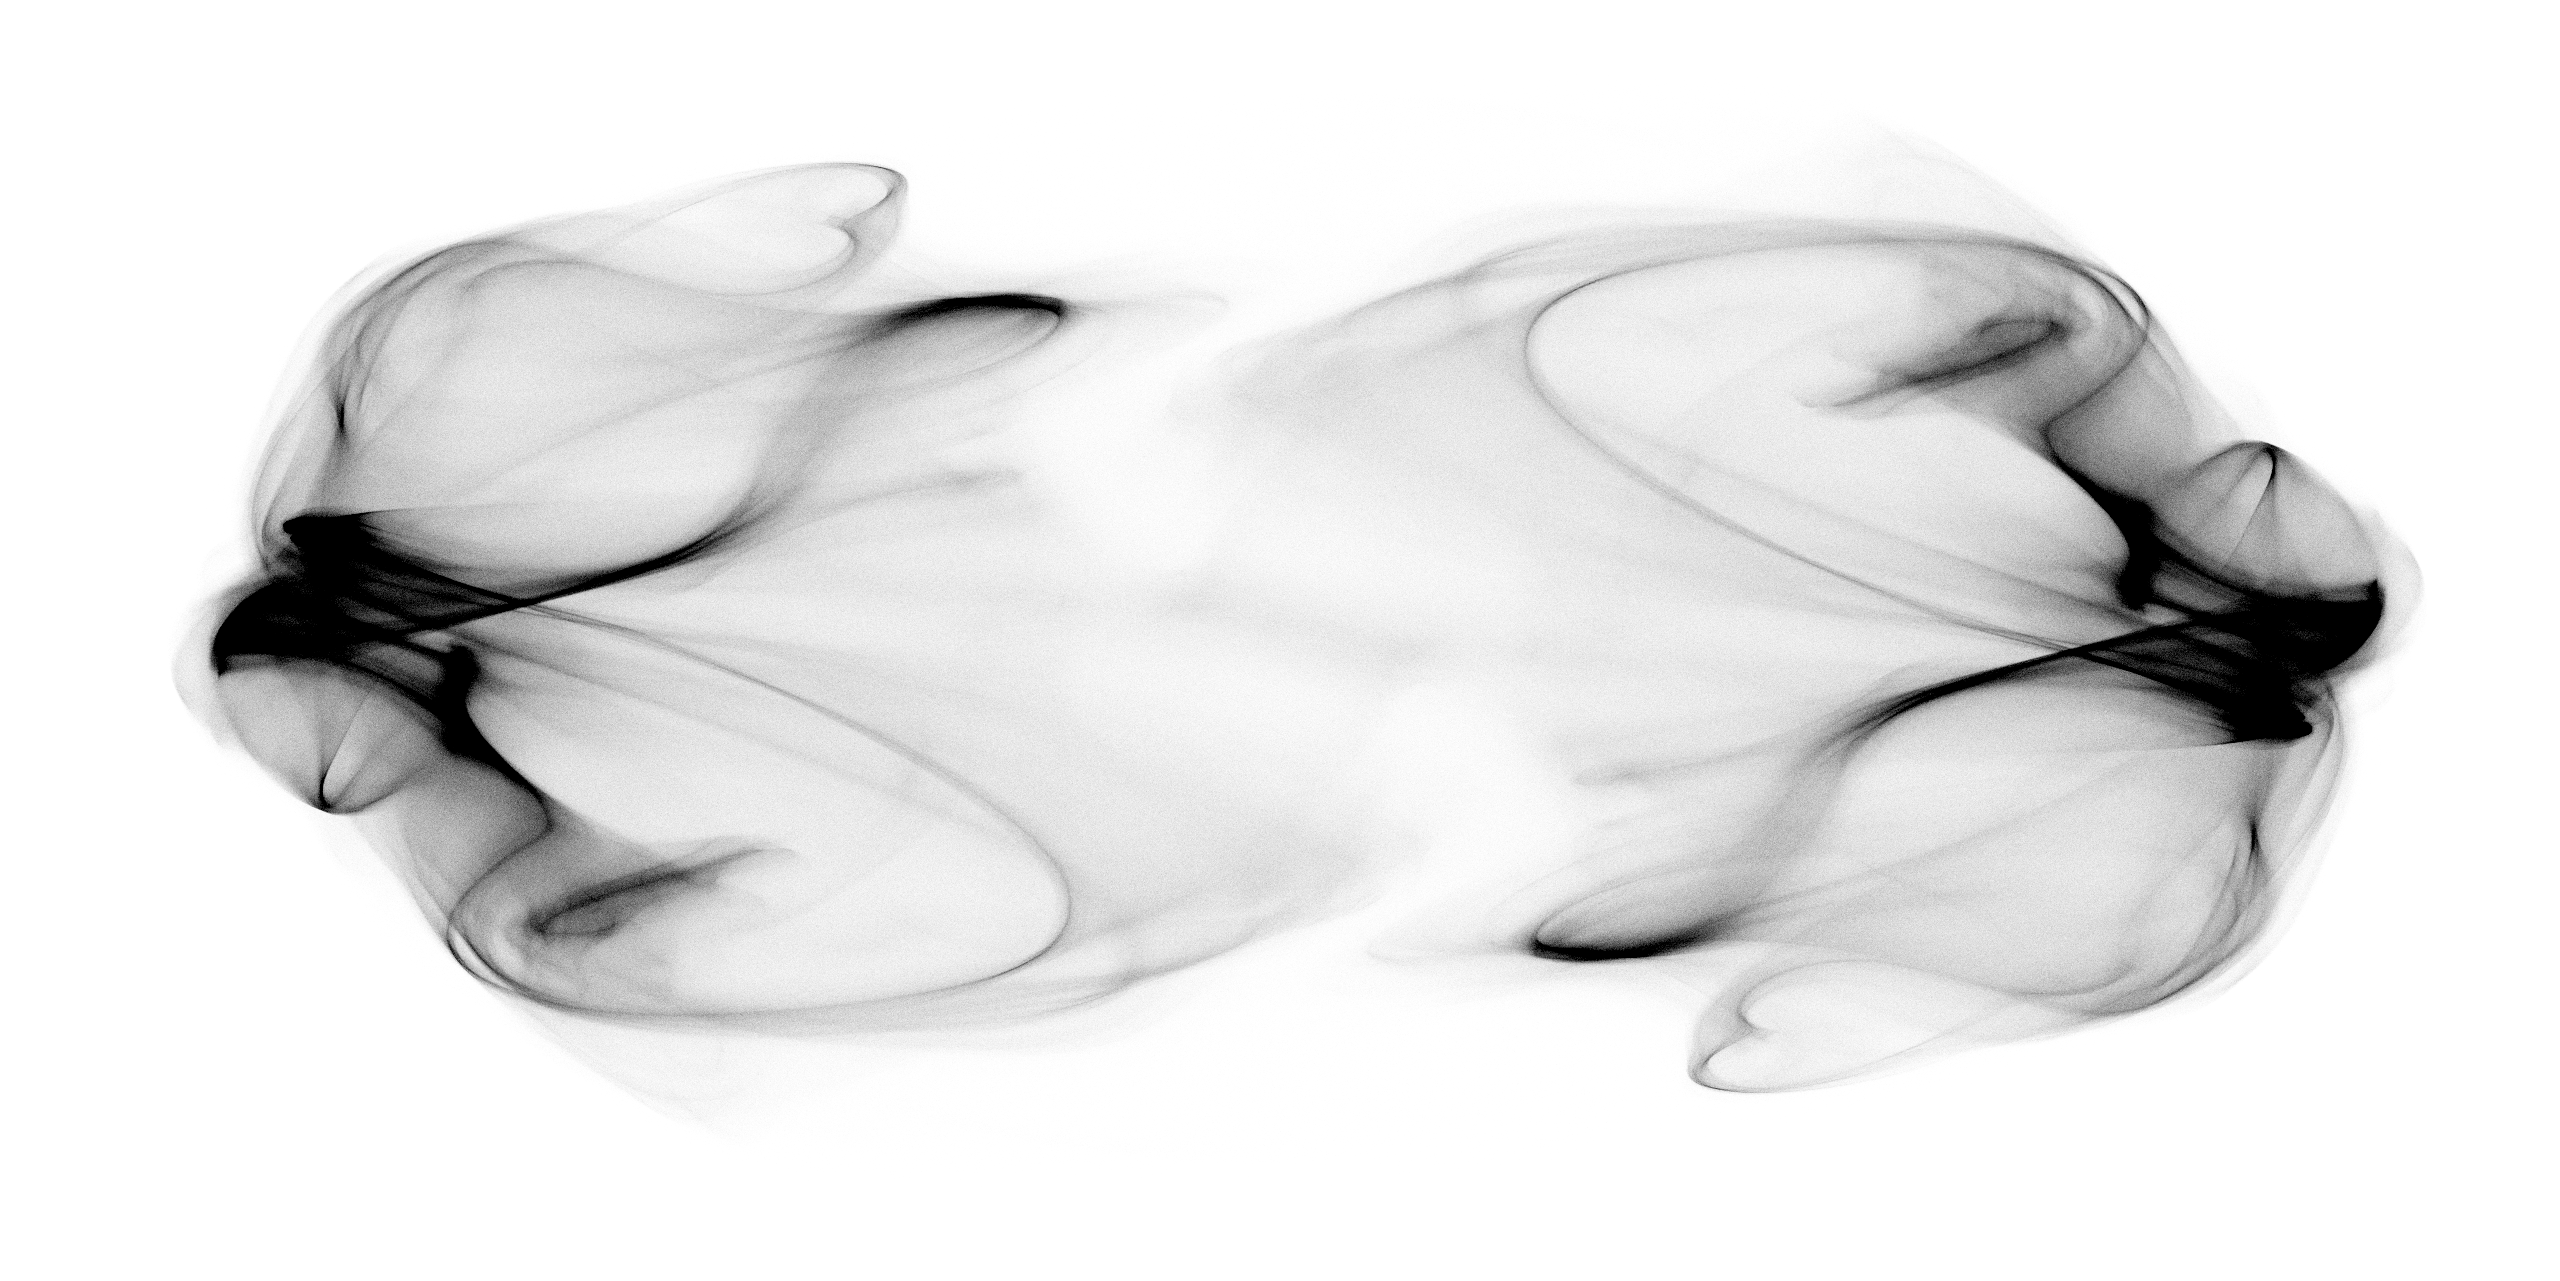 visualization of low-dimensional attractor of chaotic firing-rate network by Rainer Engelken